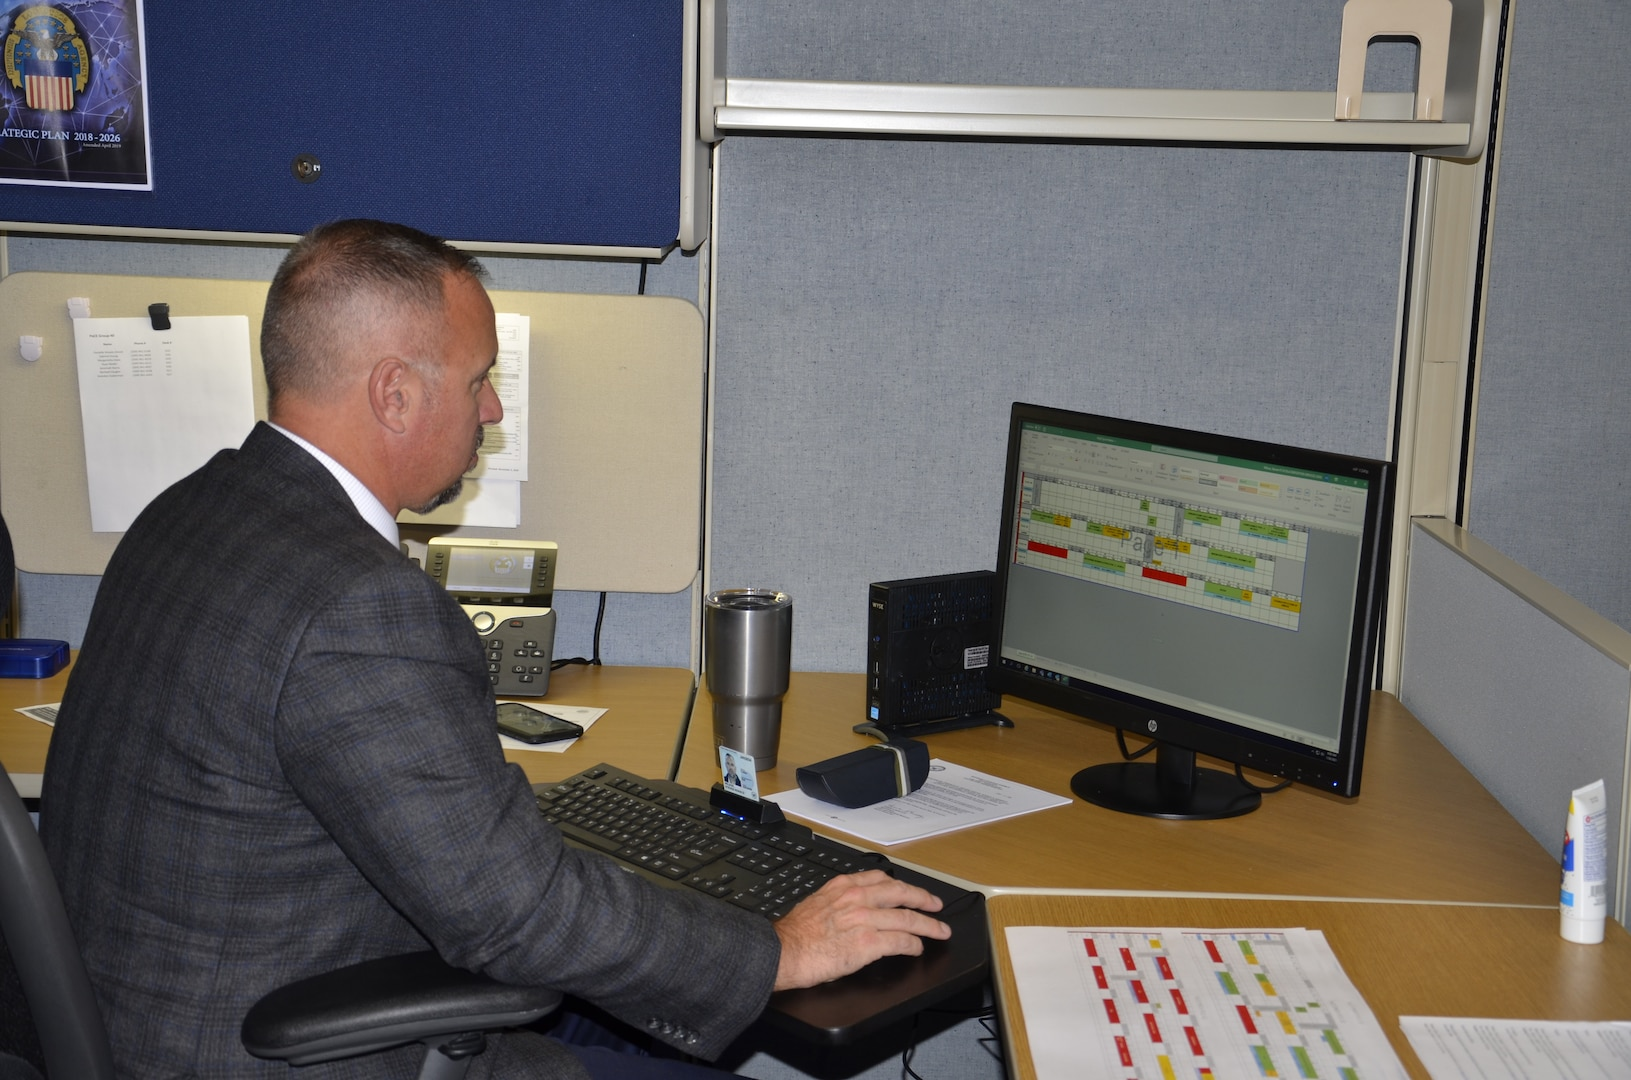 Steve Wilson, the new Pathways to Career Excellence Program manager for DLA Disposition Services, studies a training plan to help guide participants in their development